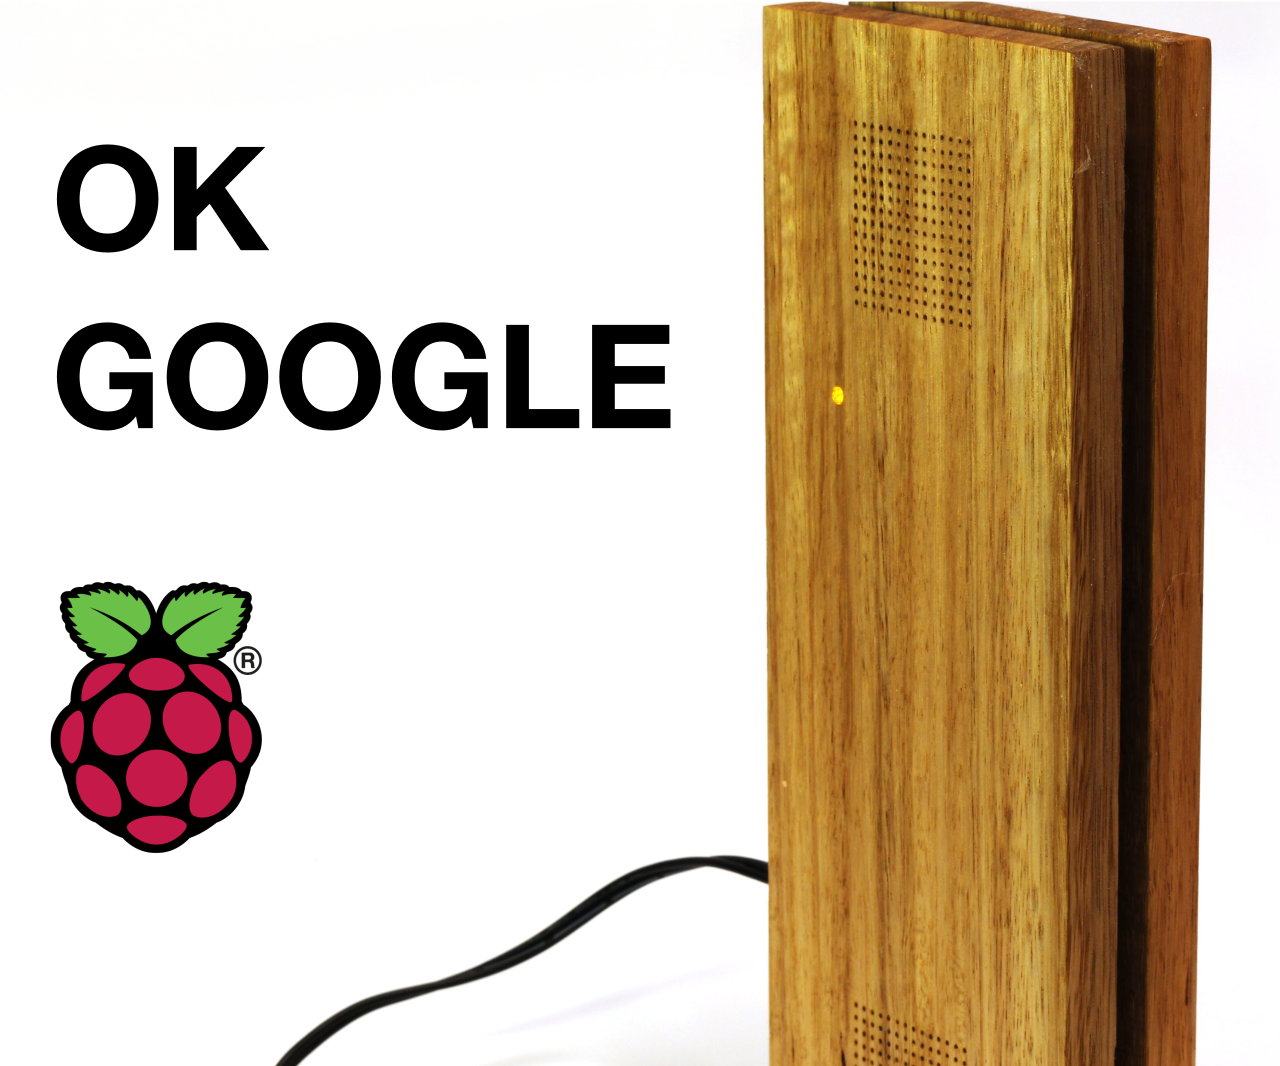 Raspberry Pi DIY Google Assistant With Sleek Wood Box